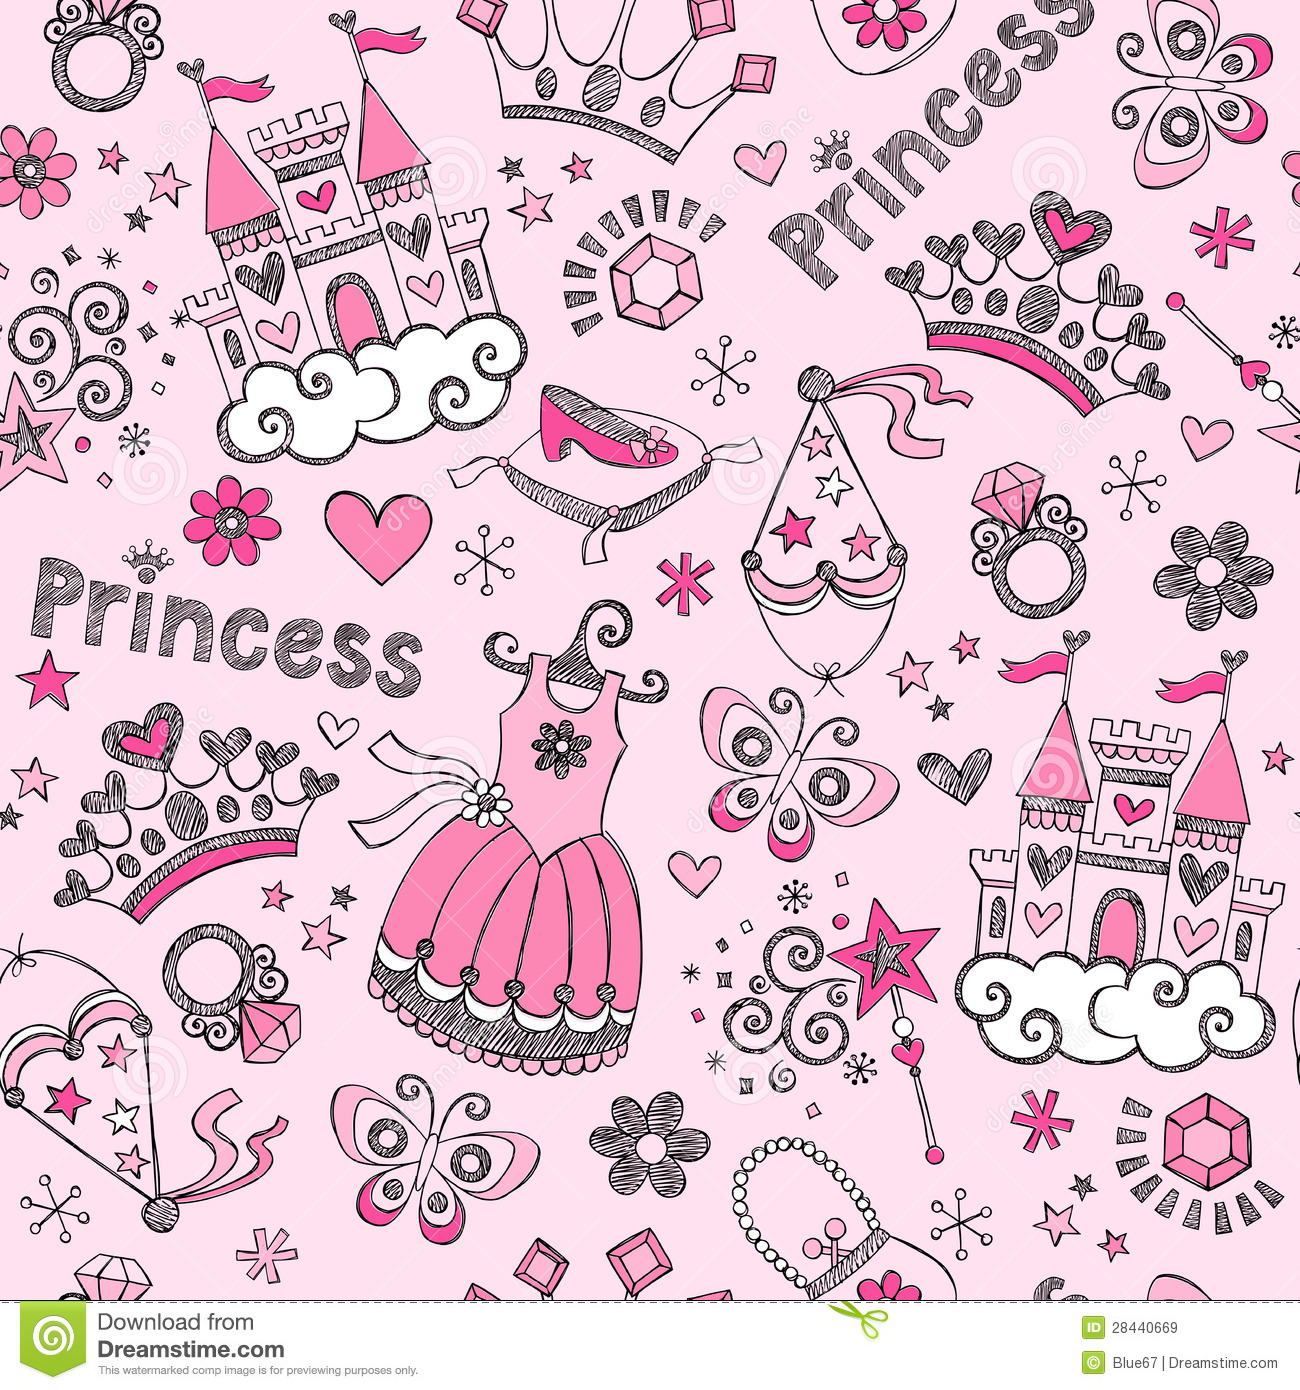 Princesa Seamless Pattern Sketchy Doodl do conto de fadas